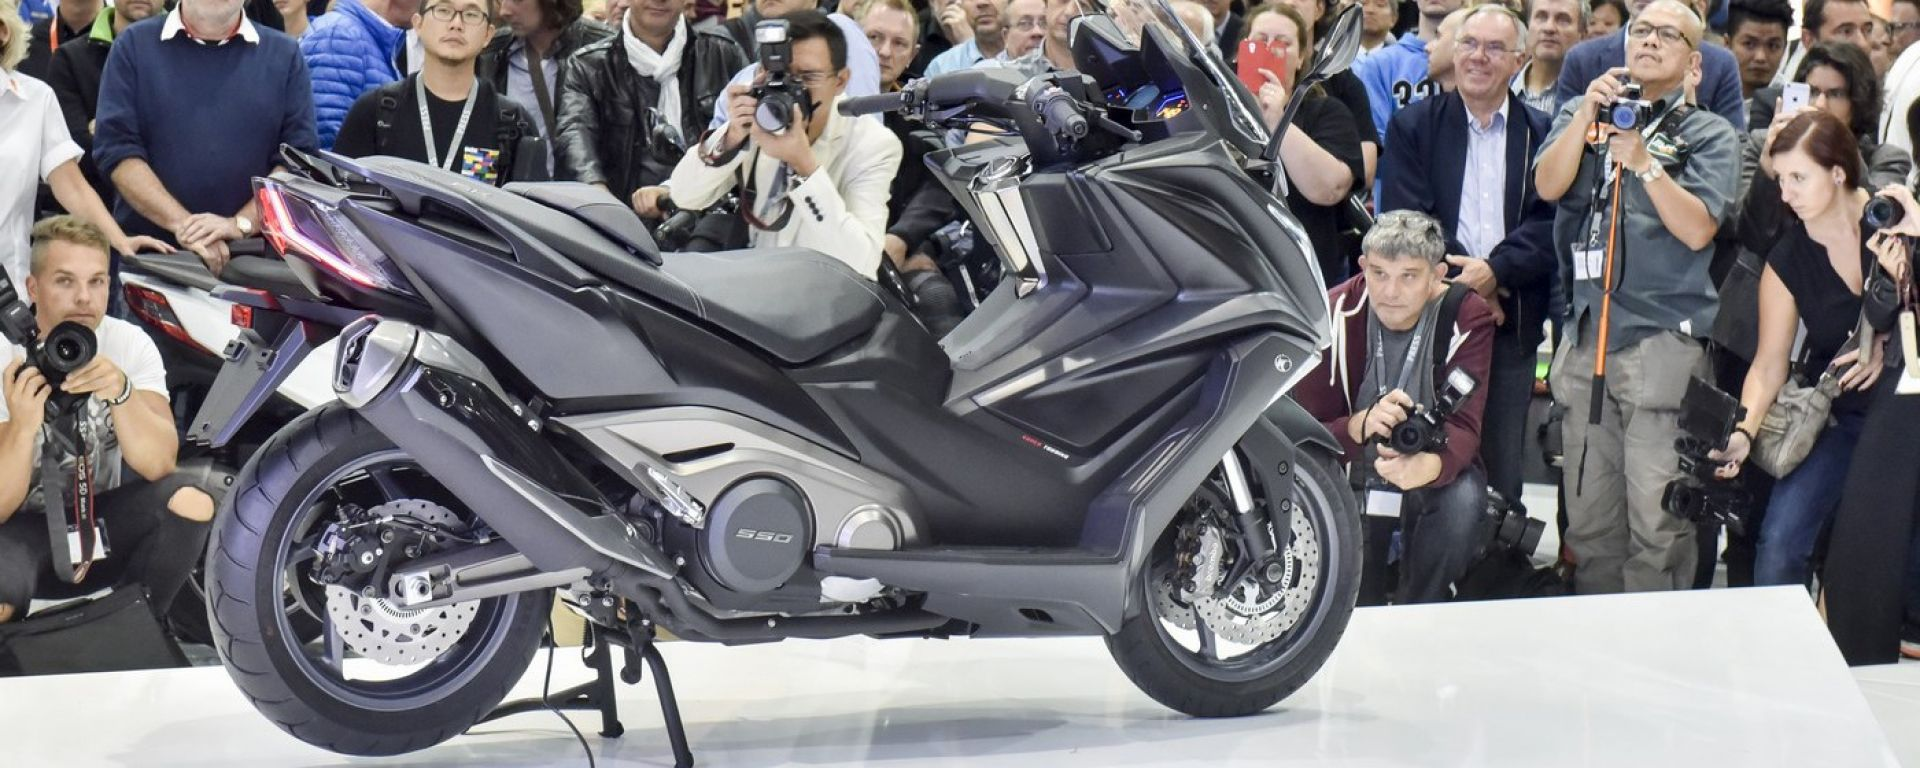 Kymco AK 550, arriva il maxi scooter taiwanese